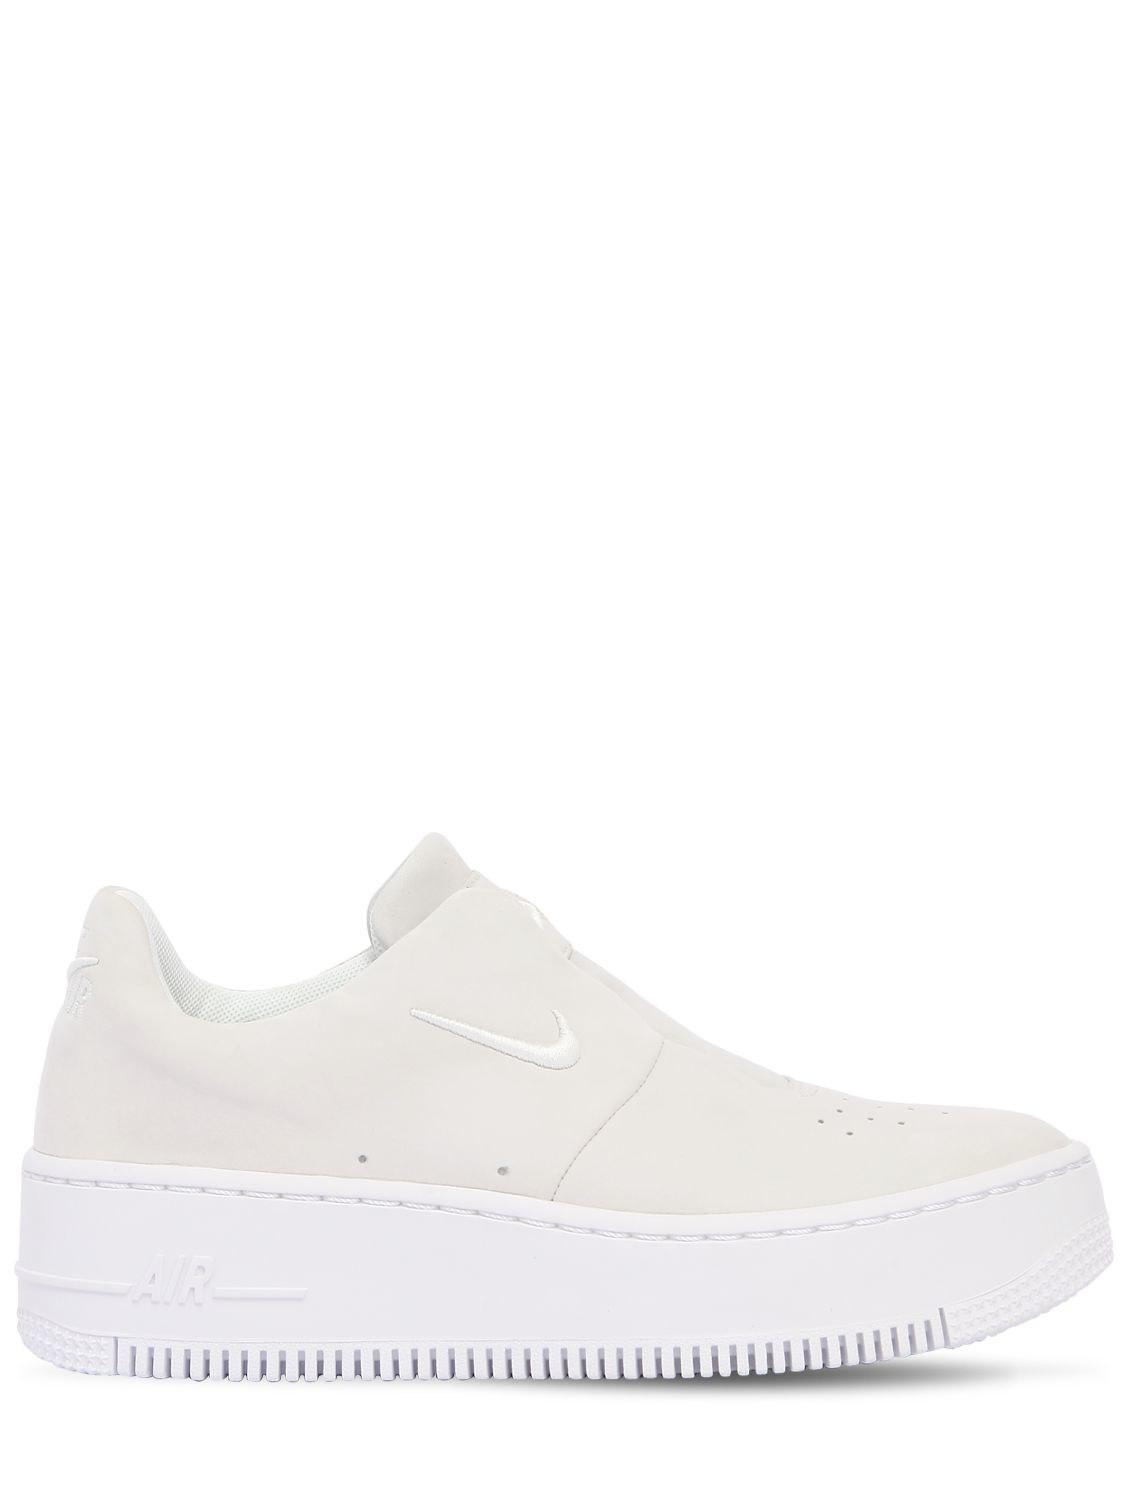 82d82a55742 Lyst - Nike Air Force 1 Sage Xx Slip-on Sneakers in White